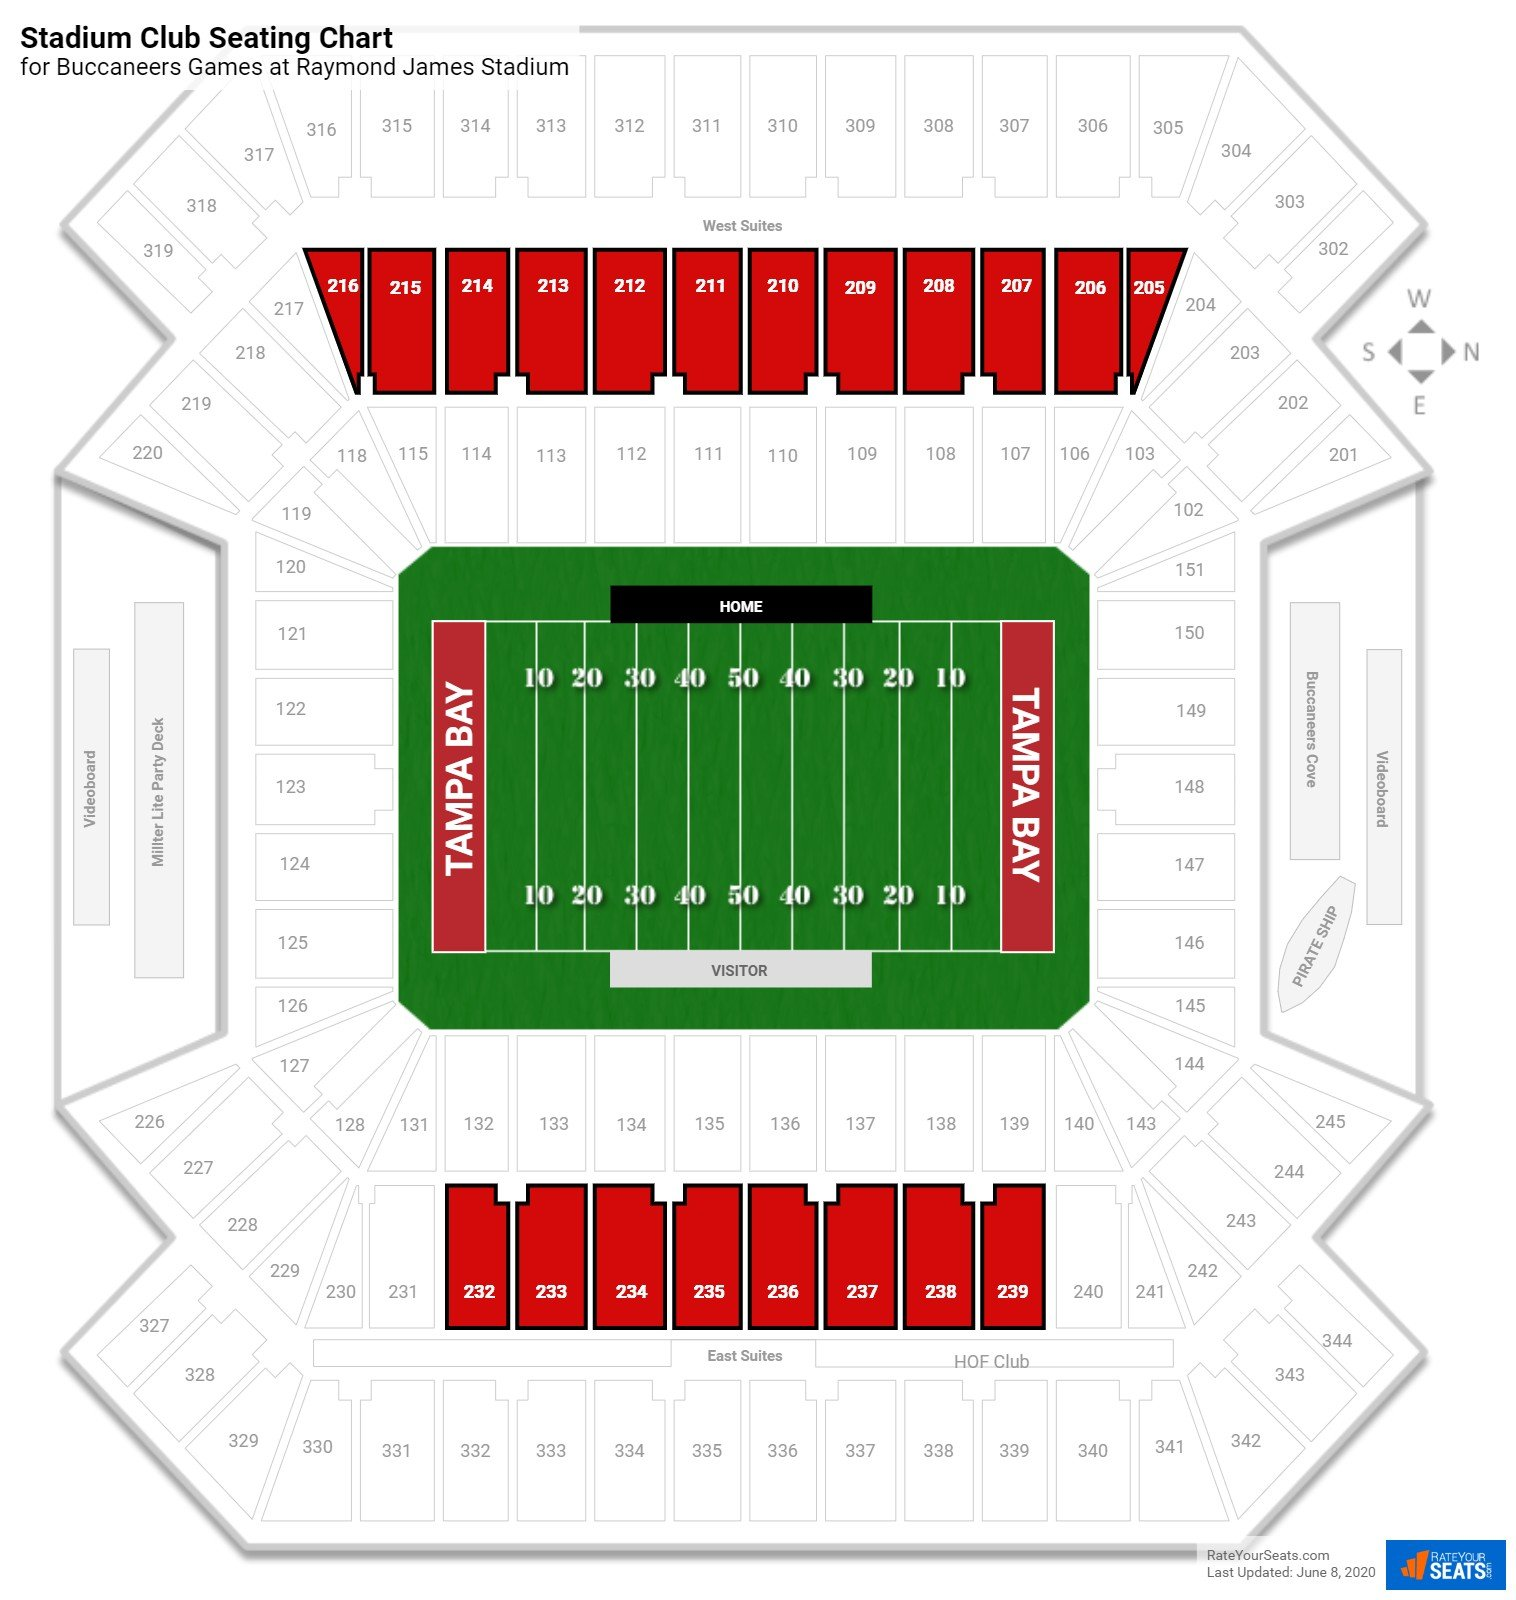 Raymond James Stadium Stadium Club seating chart